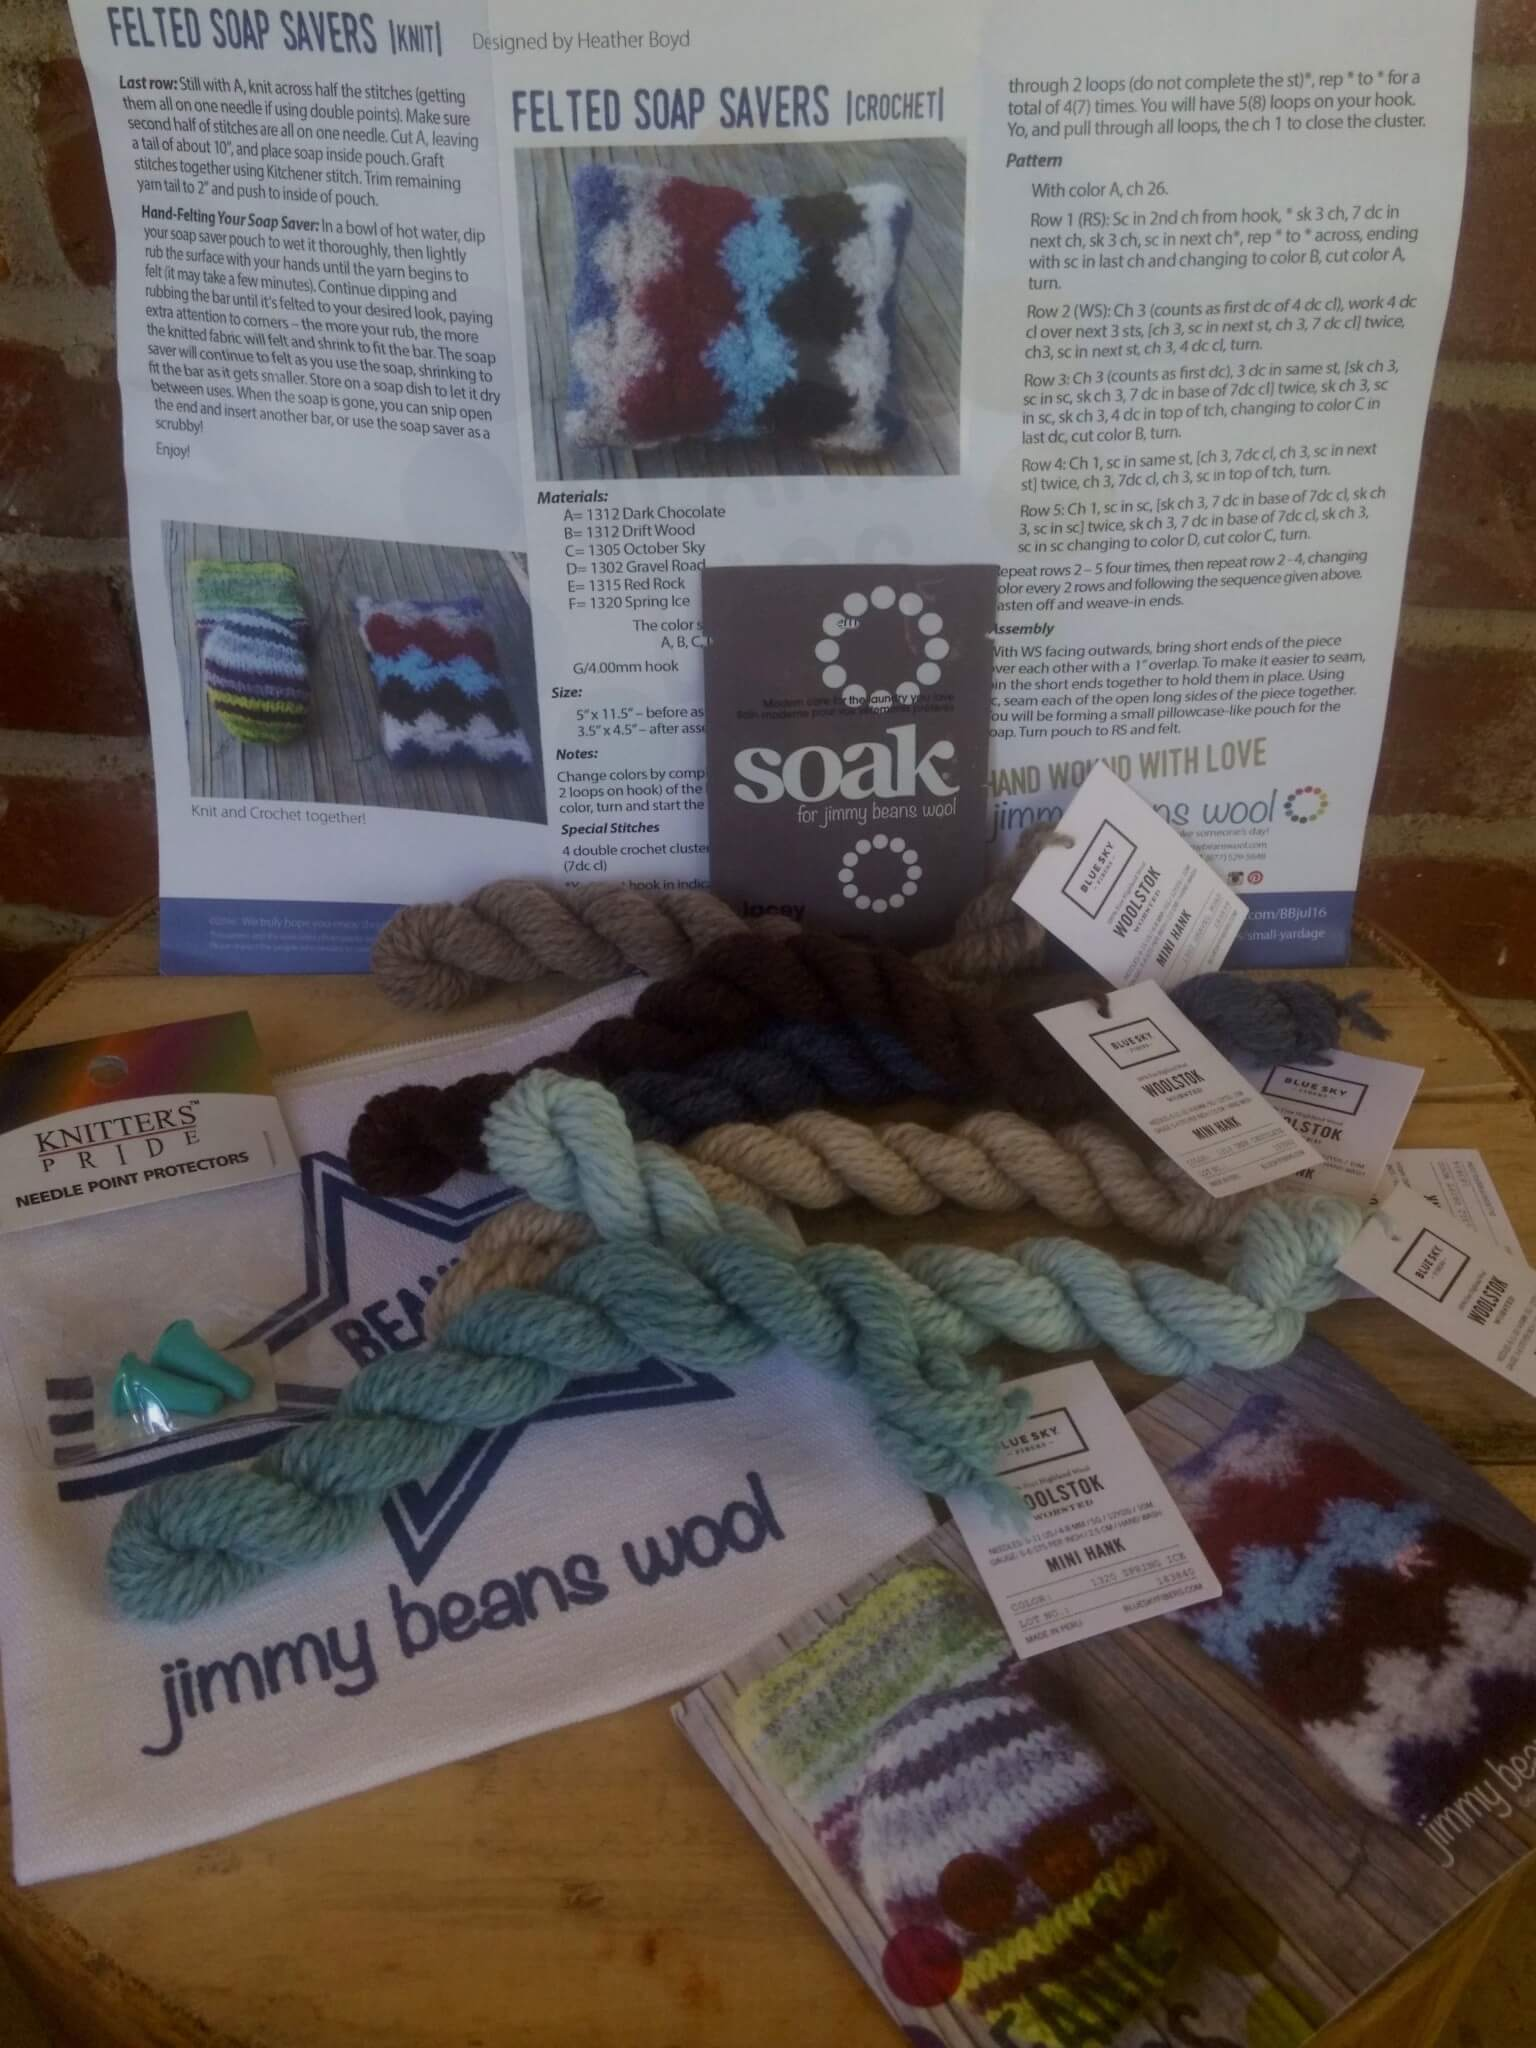 Jimmy Beans Wool Beanie Bag Subscription Review – July 2016